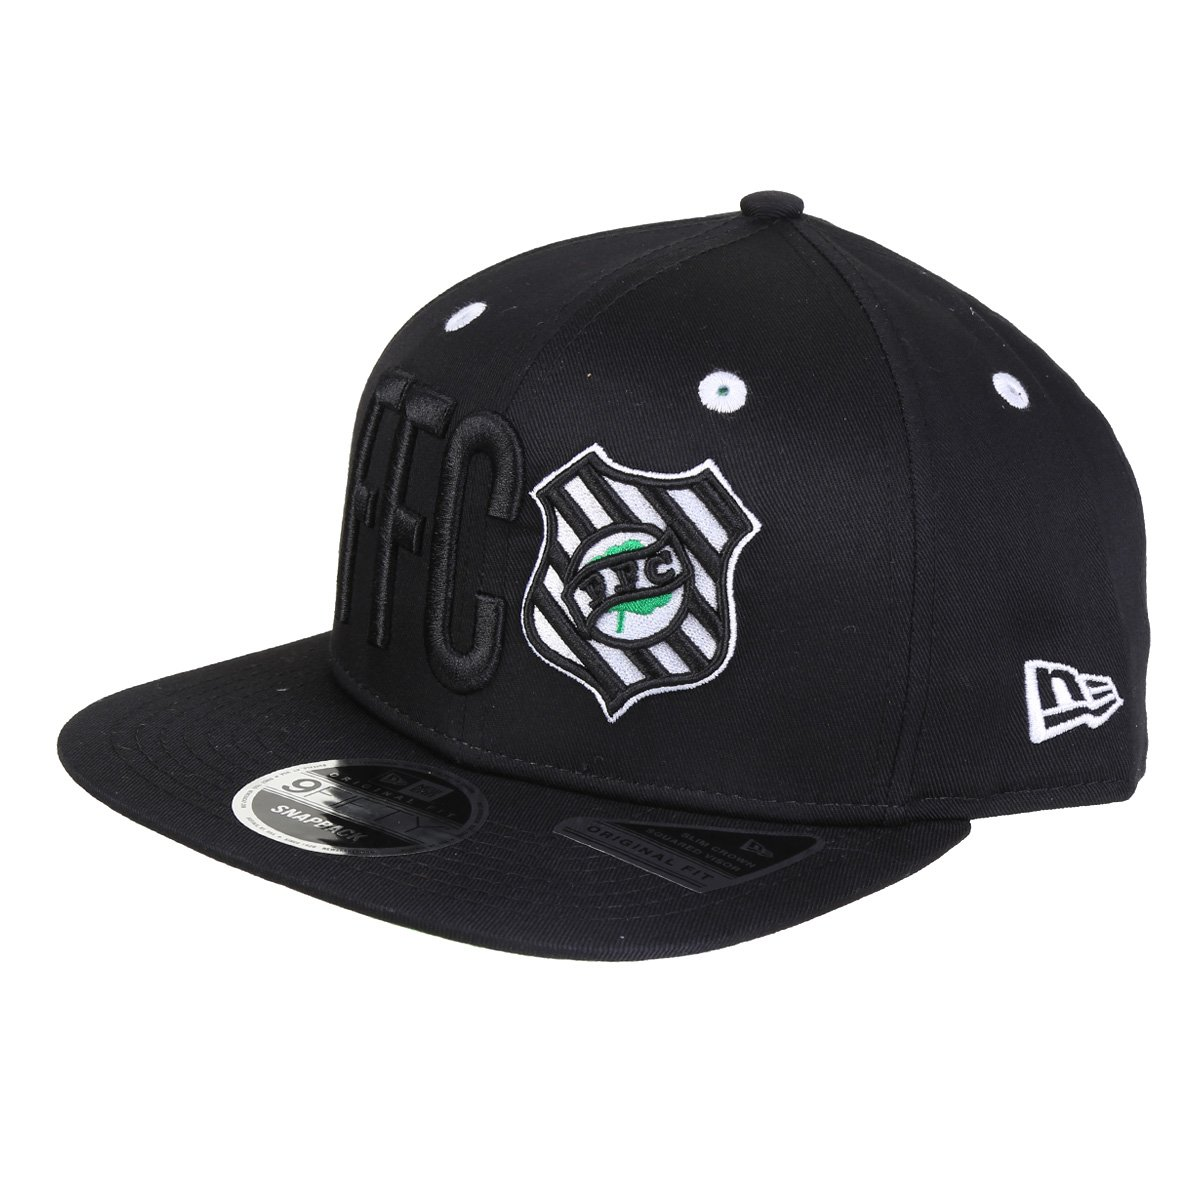 Boné New Era Figueirense Of Big Arte Frontal 9Fifty Aba Reta